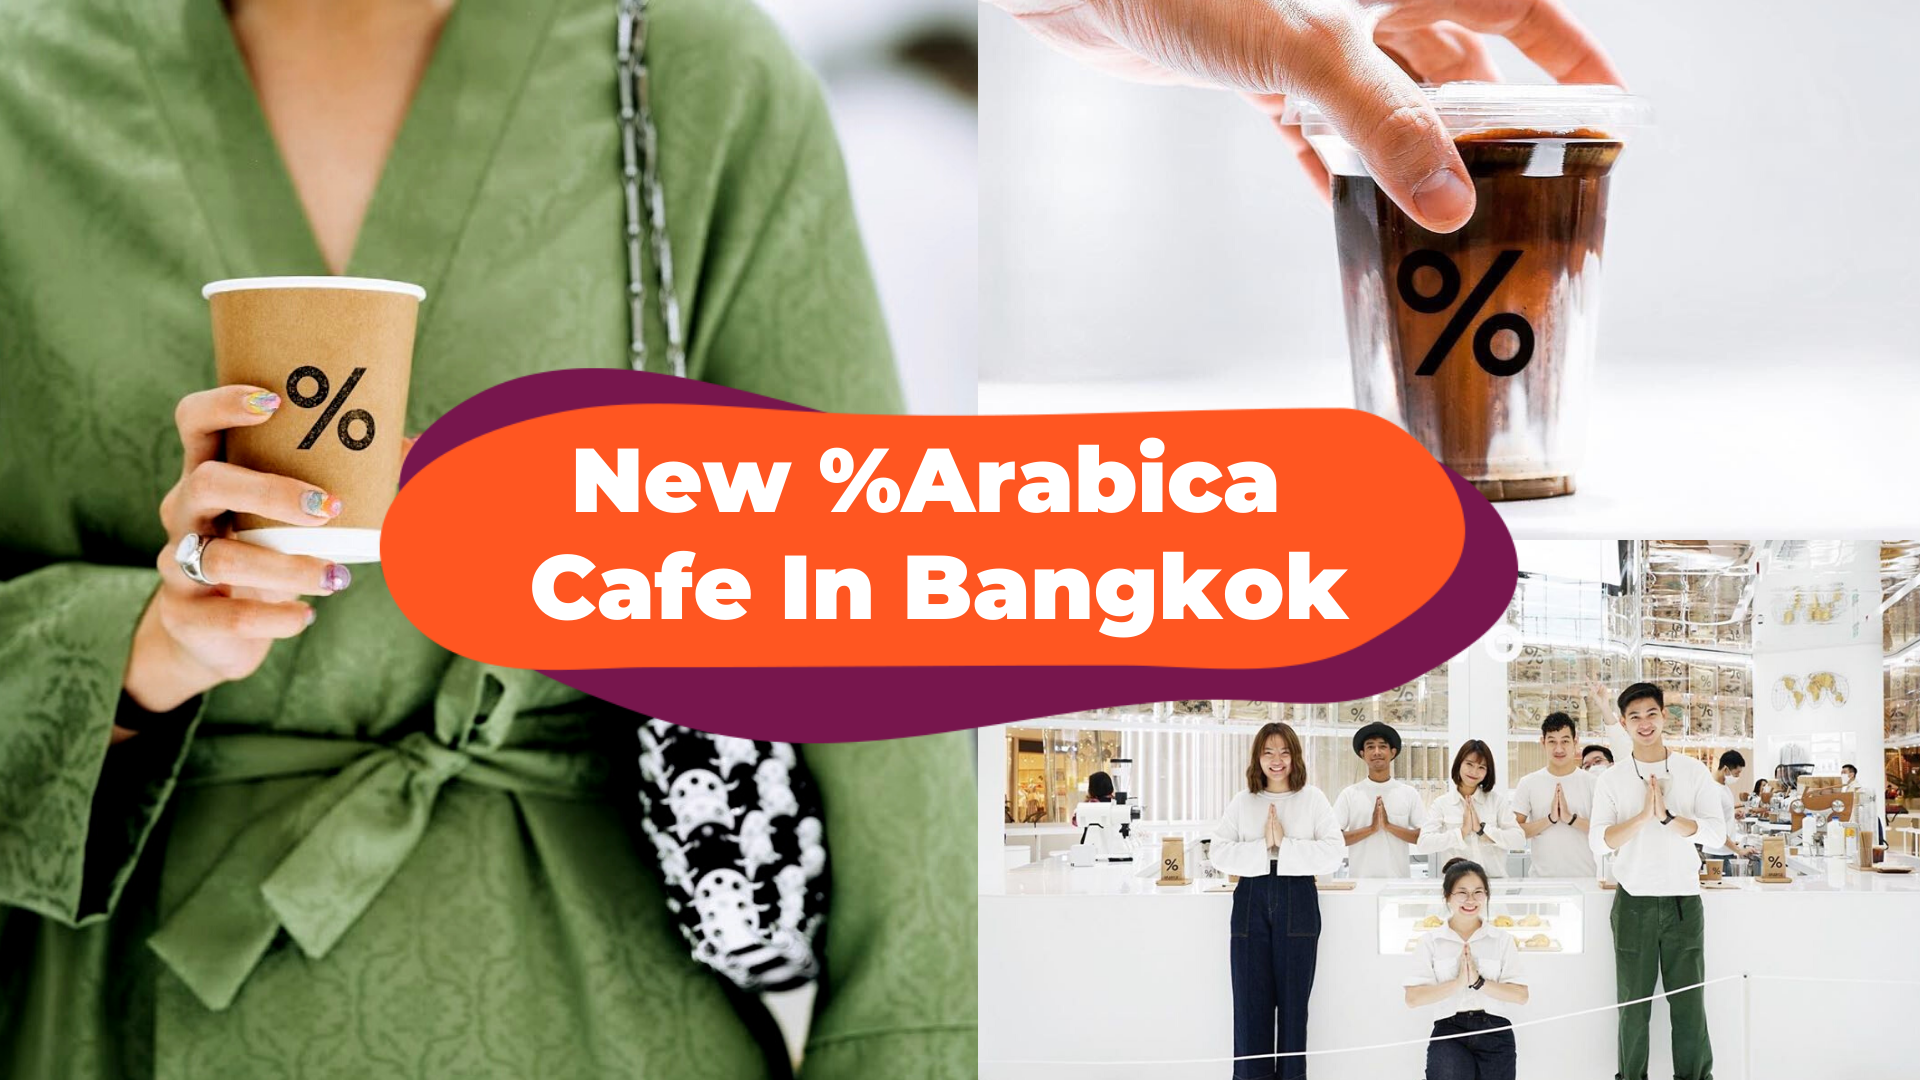 Kyoto-Born Coffee Shop %Arabica Opens Beautiful Flagship Store In Bangkok, Thailand - Add This Onto Your Post-Covid Travel List!